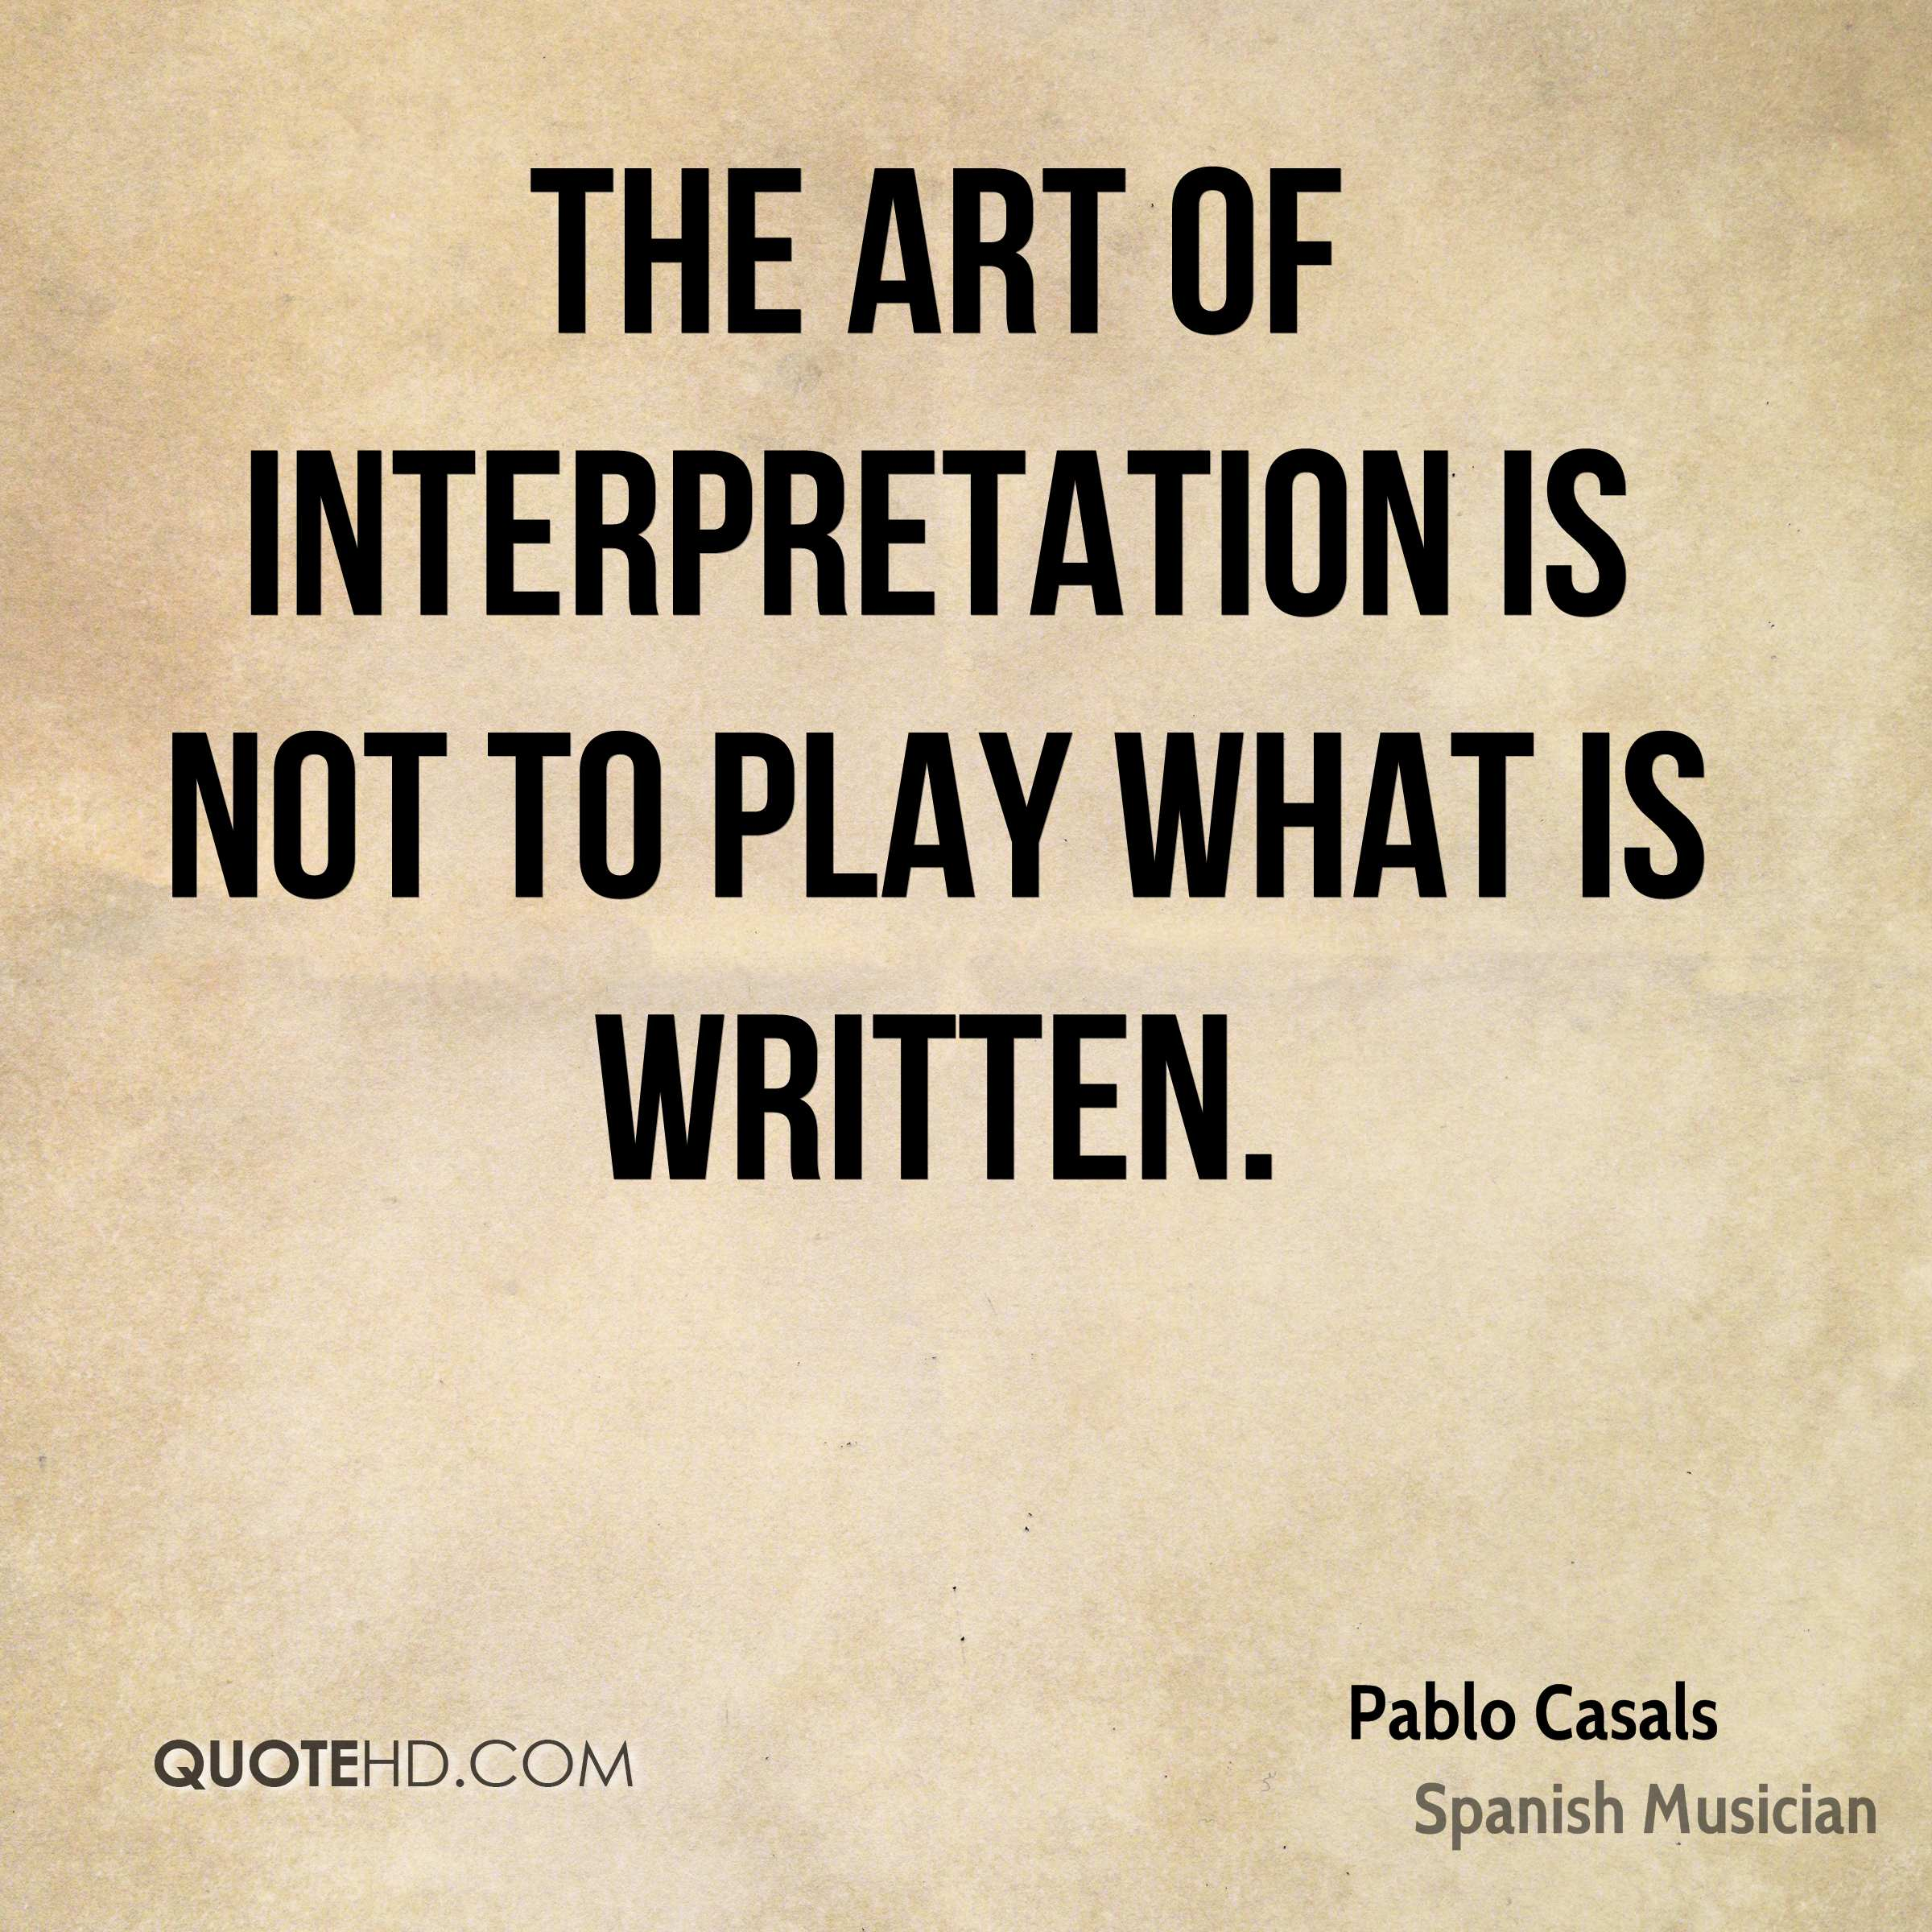 The art of interpretation is not to play what is written.